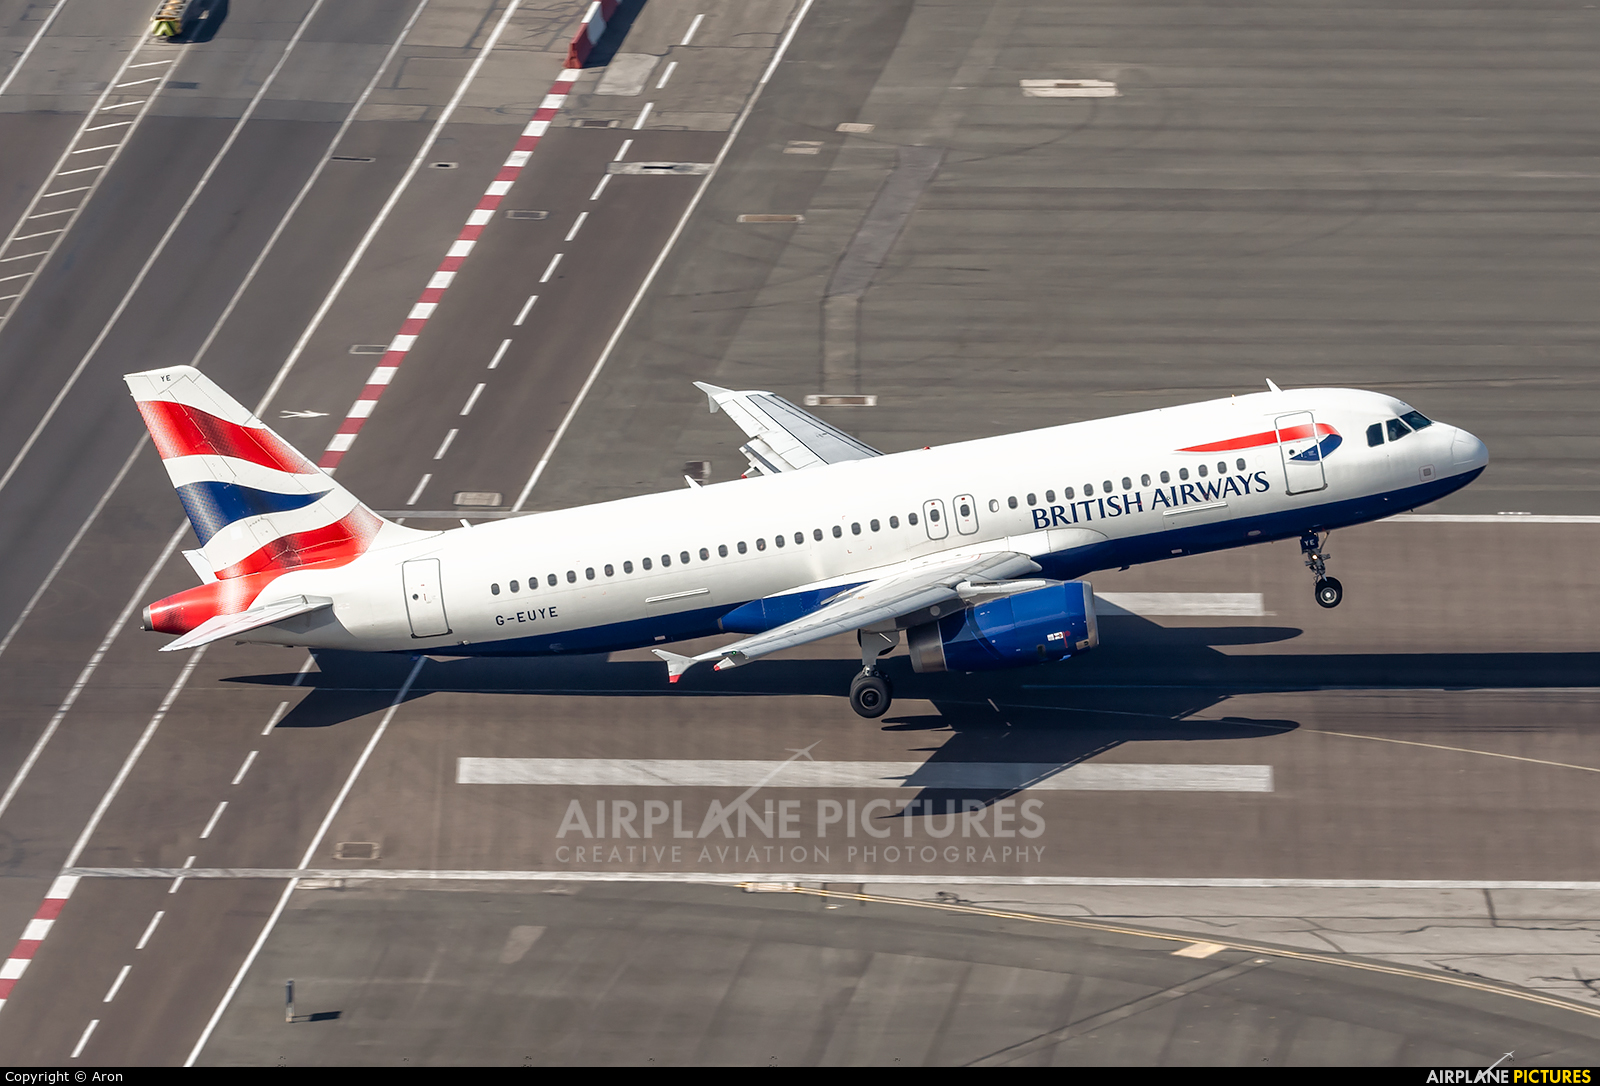 British Airways G-EUYE aircraft at Gibraltar